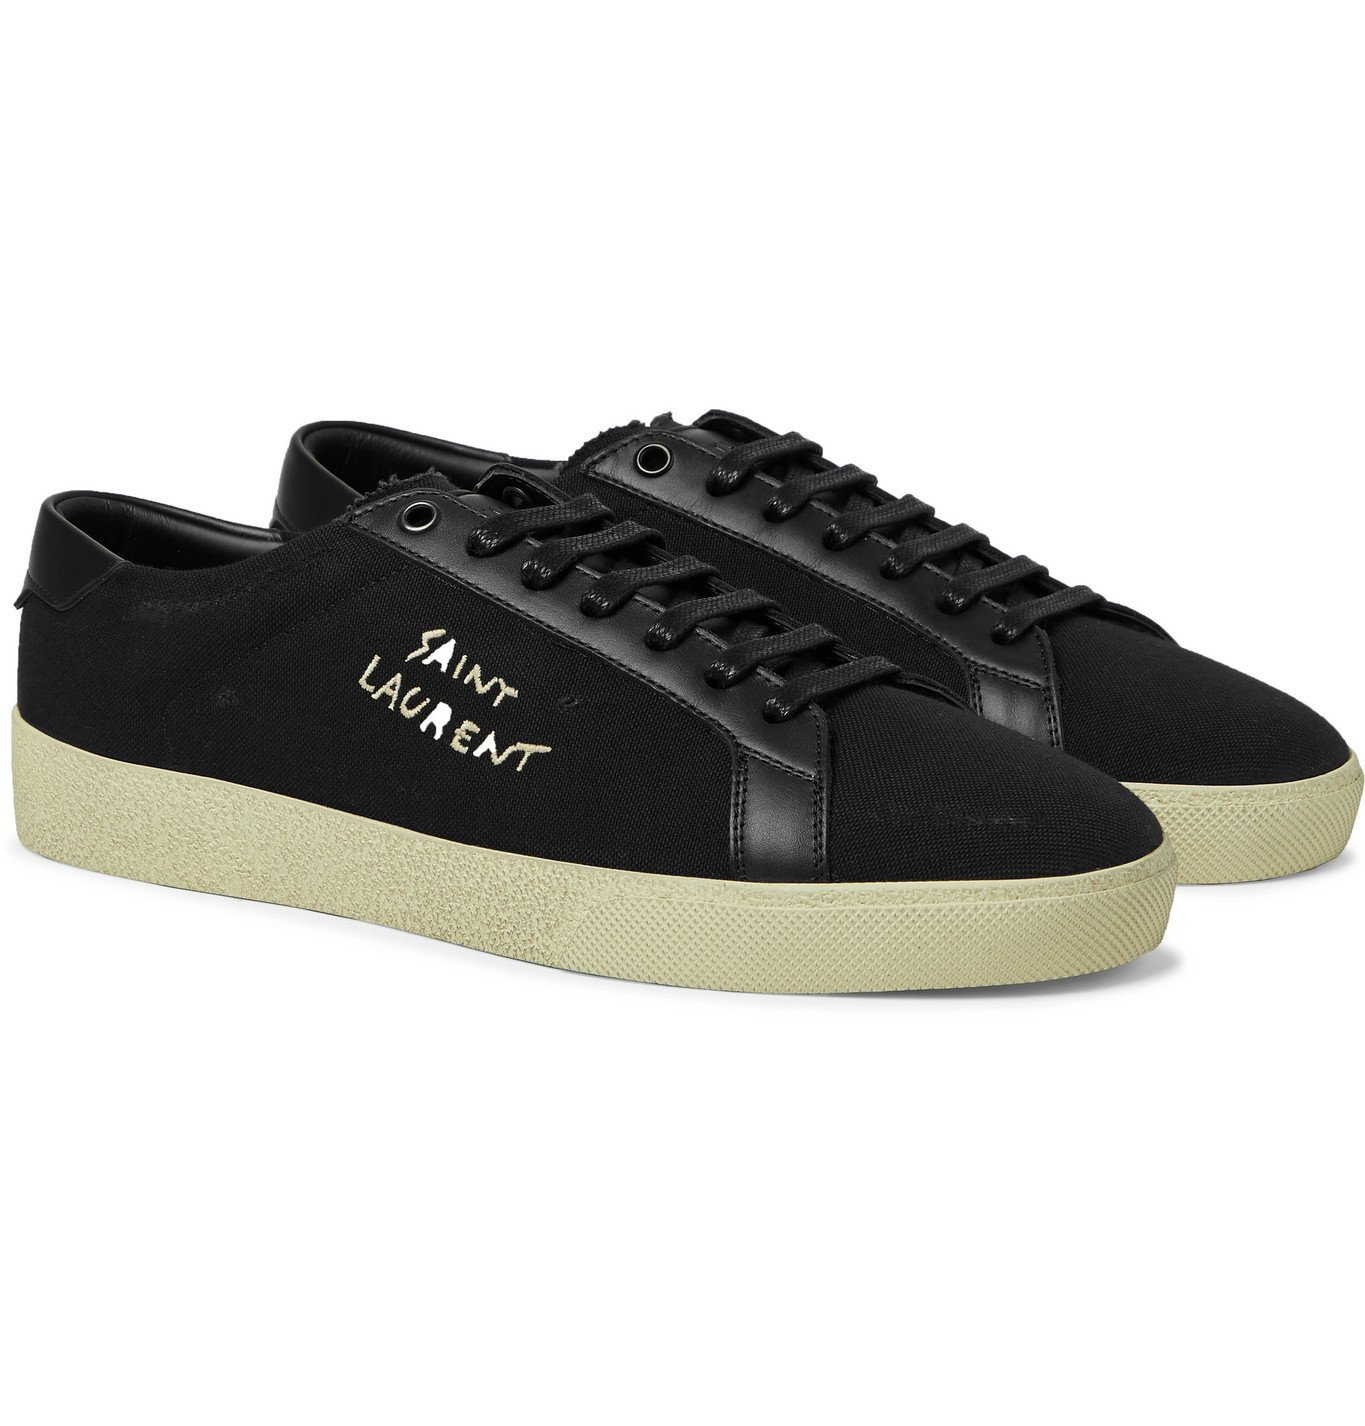 Photo: SAINT LAURENT - Court Classic SL/06 Leather-Trimmed Logo-Embroidered Distressed Canvas Sneakers - Black